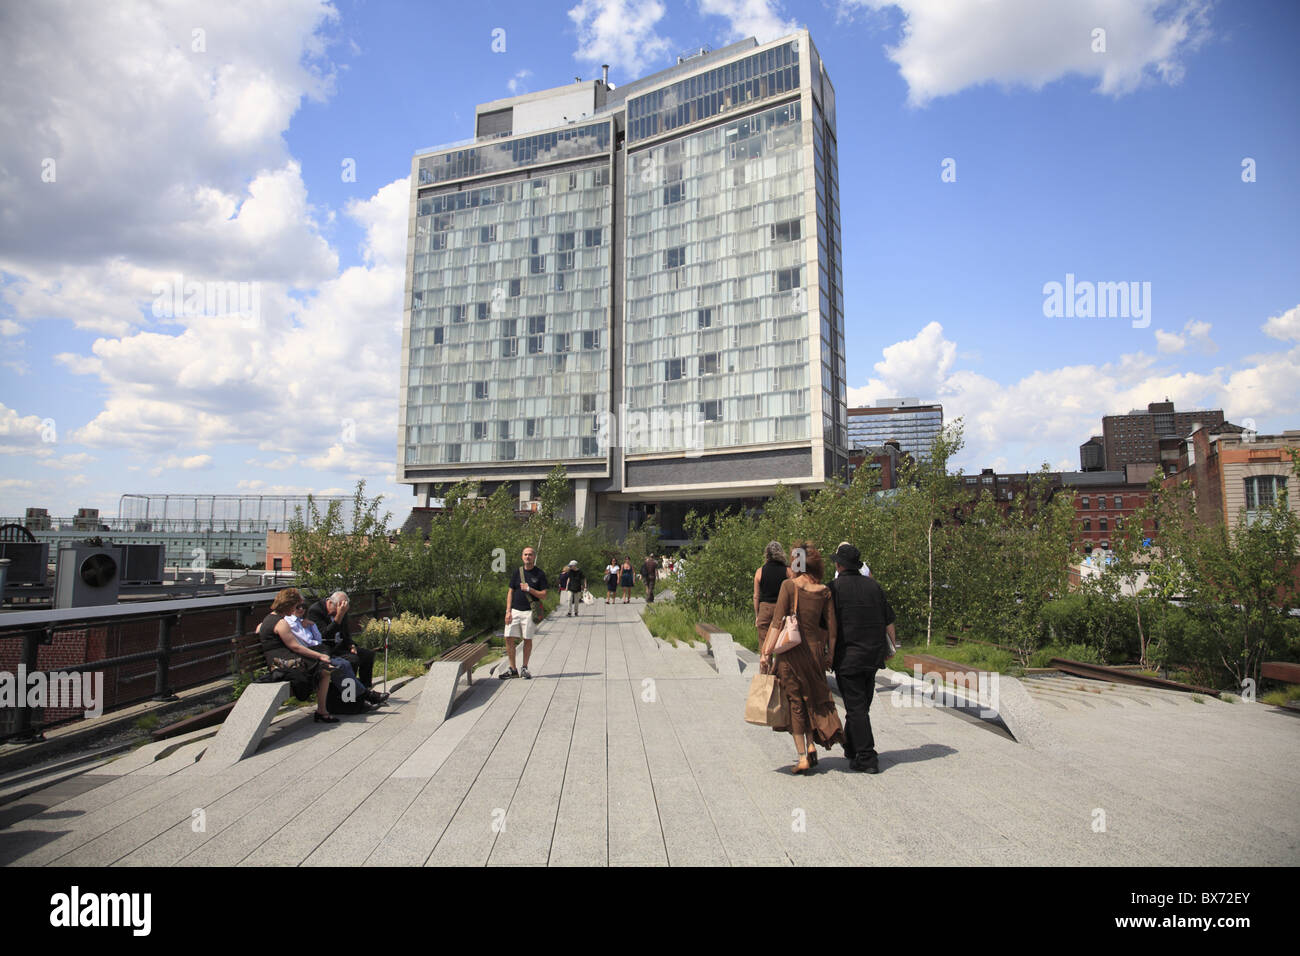 Standard hotel high line elevated public park on former for The highline hotel new york